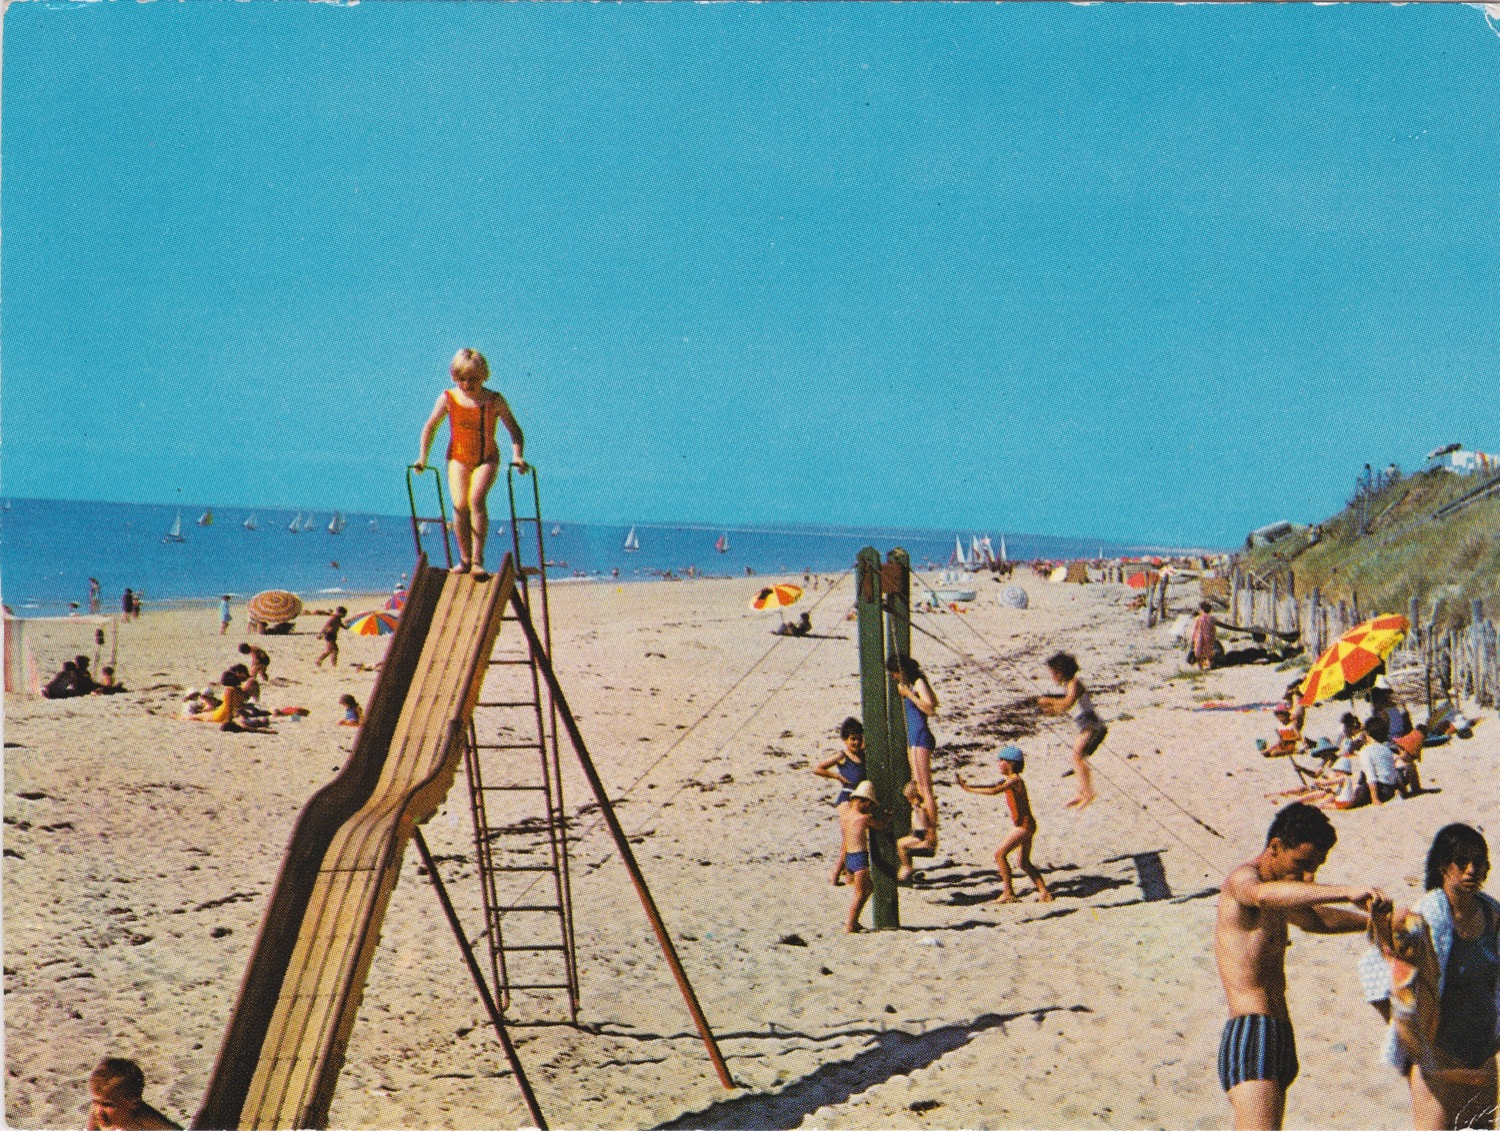 1970 St Martin Plage 6 © collection Jean Claude Ferret